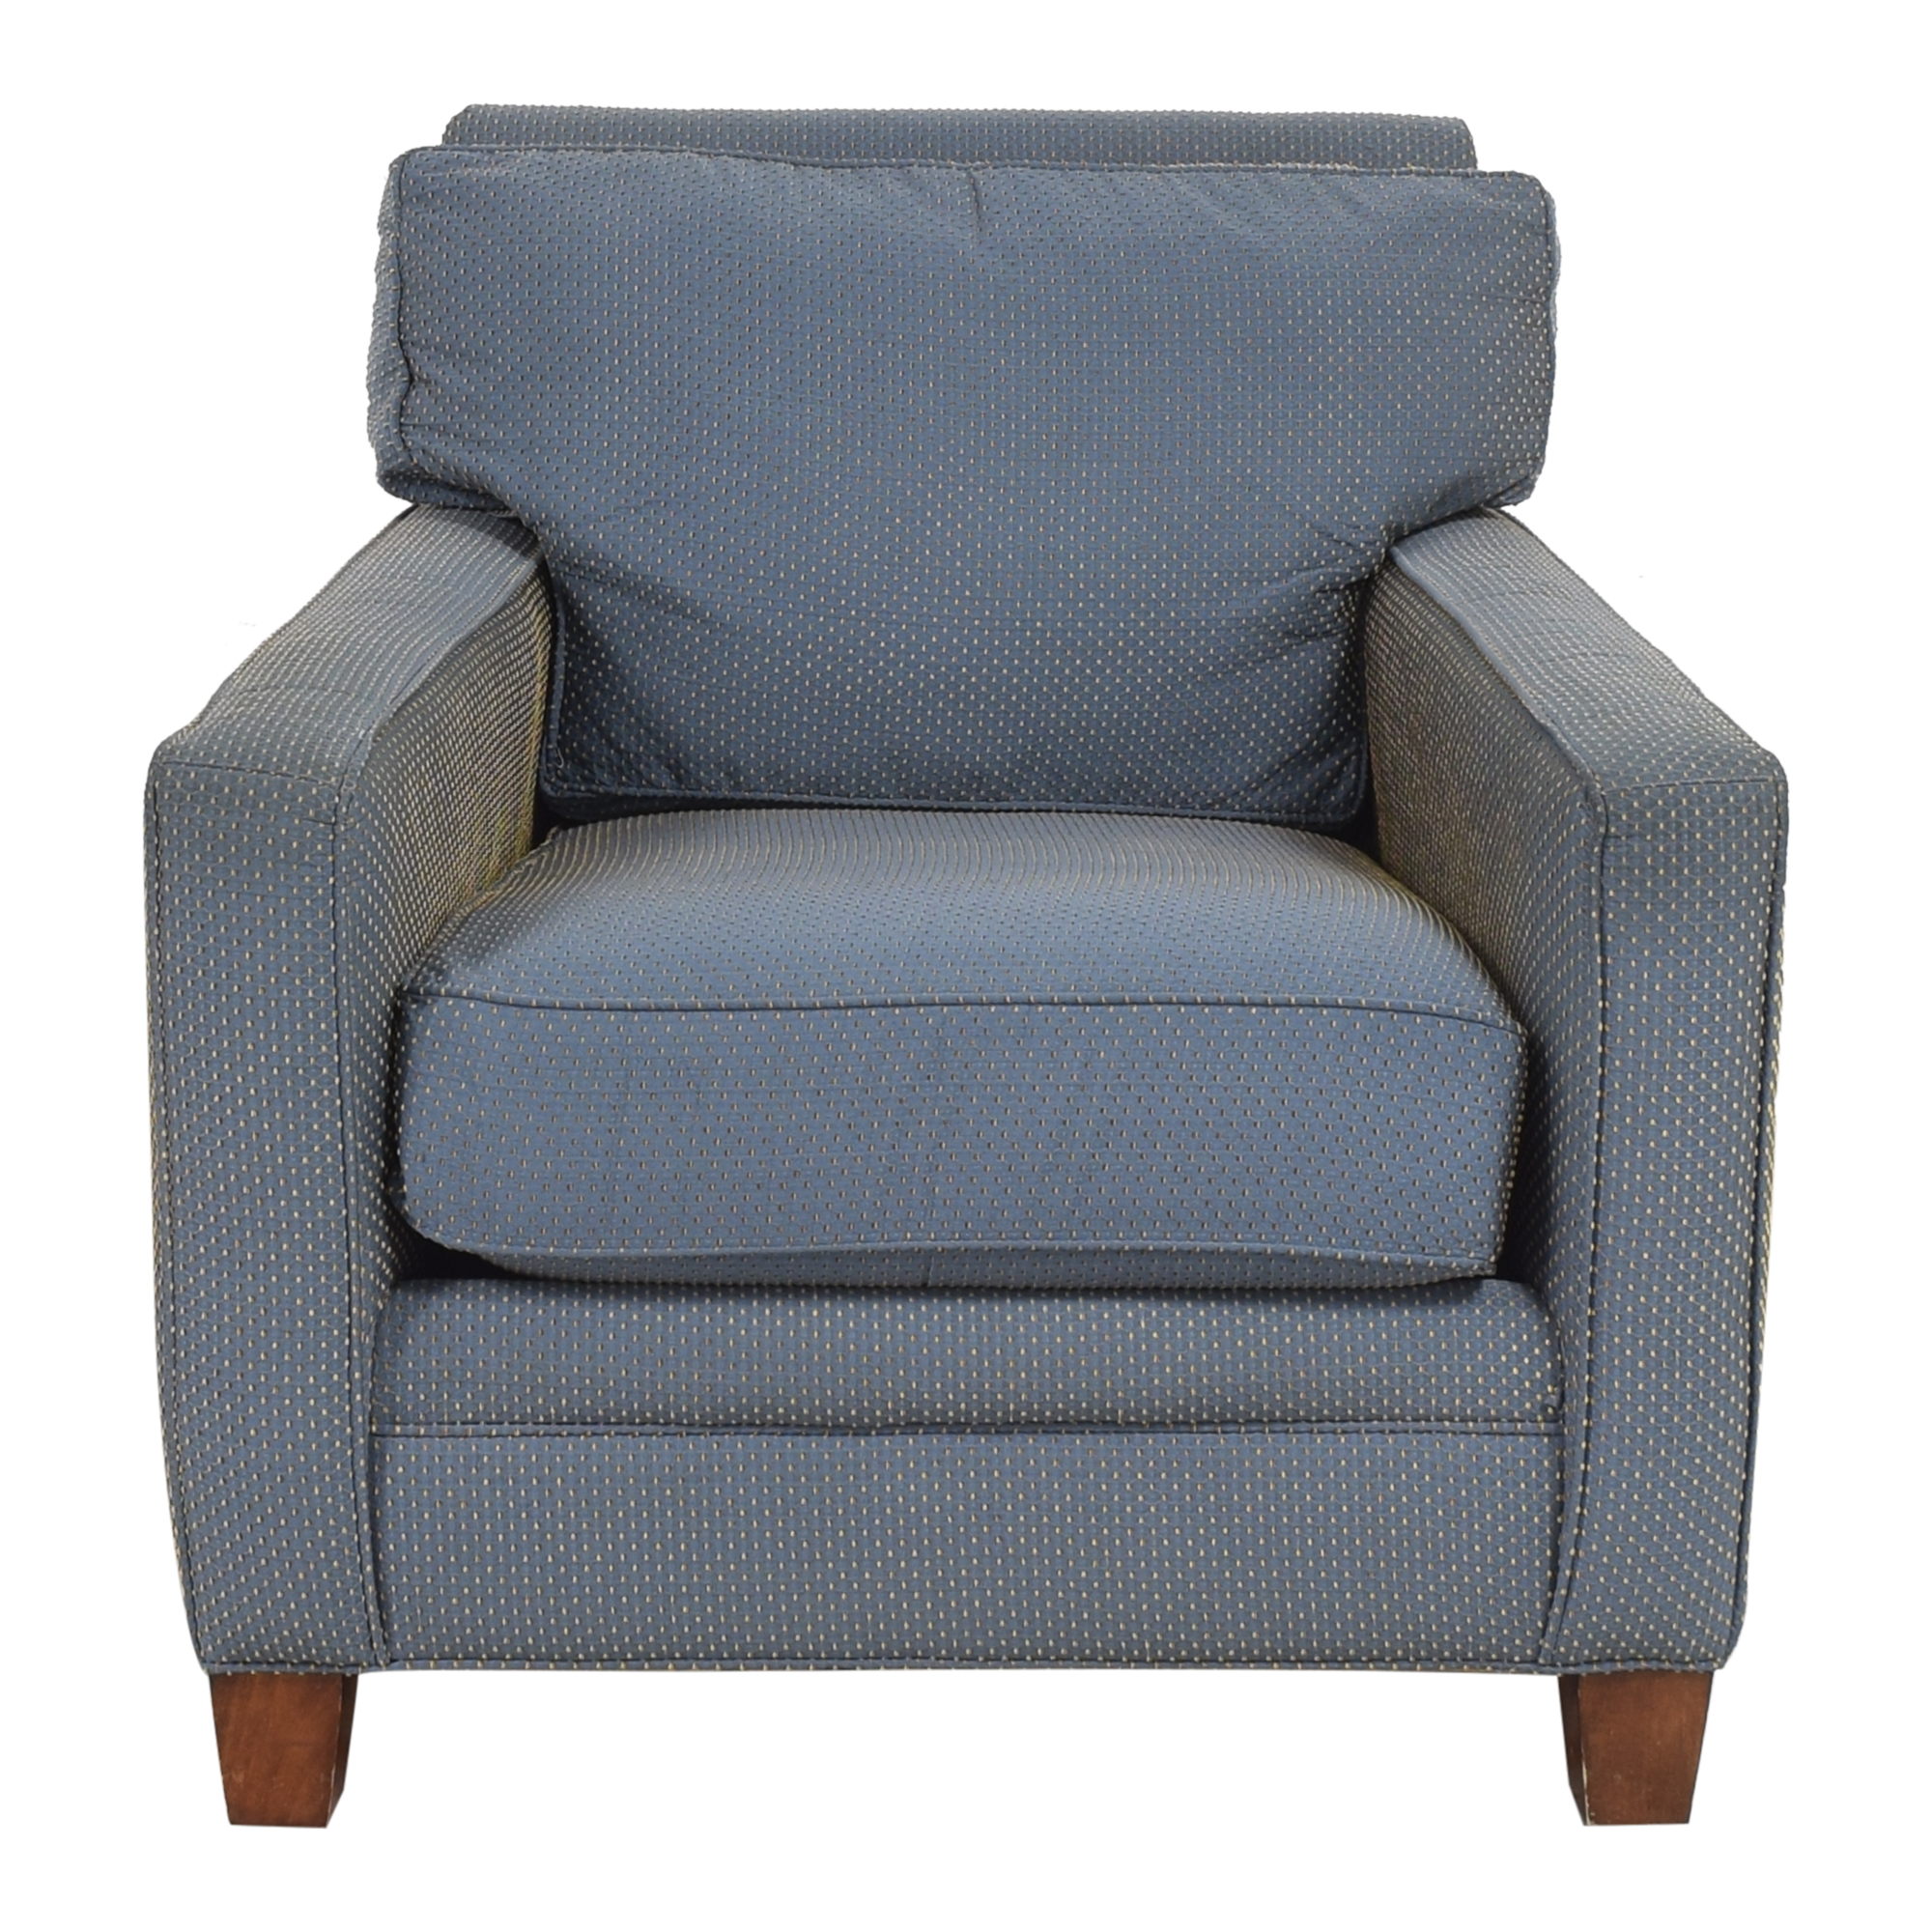 shop Thomasville Accent Chair Thomasville Chairs